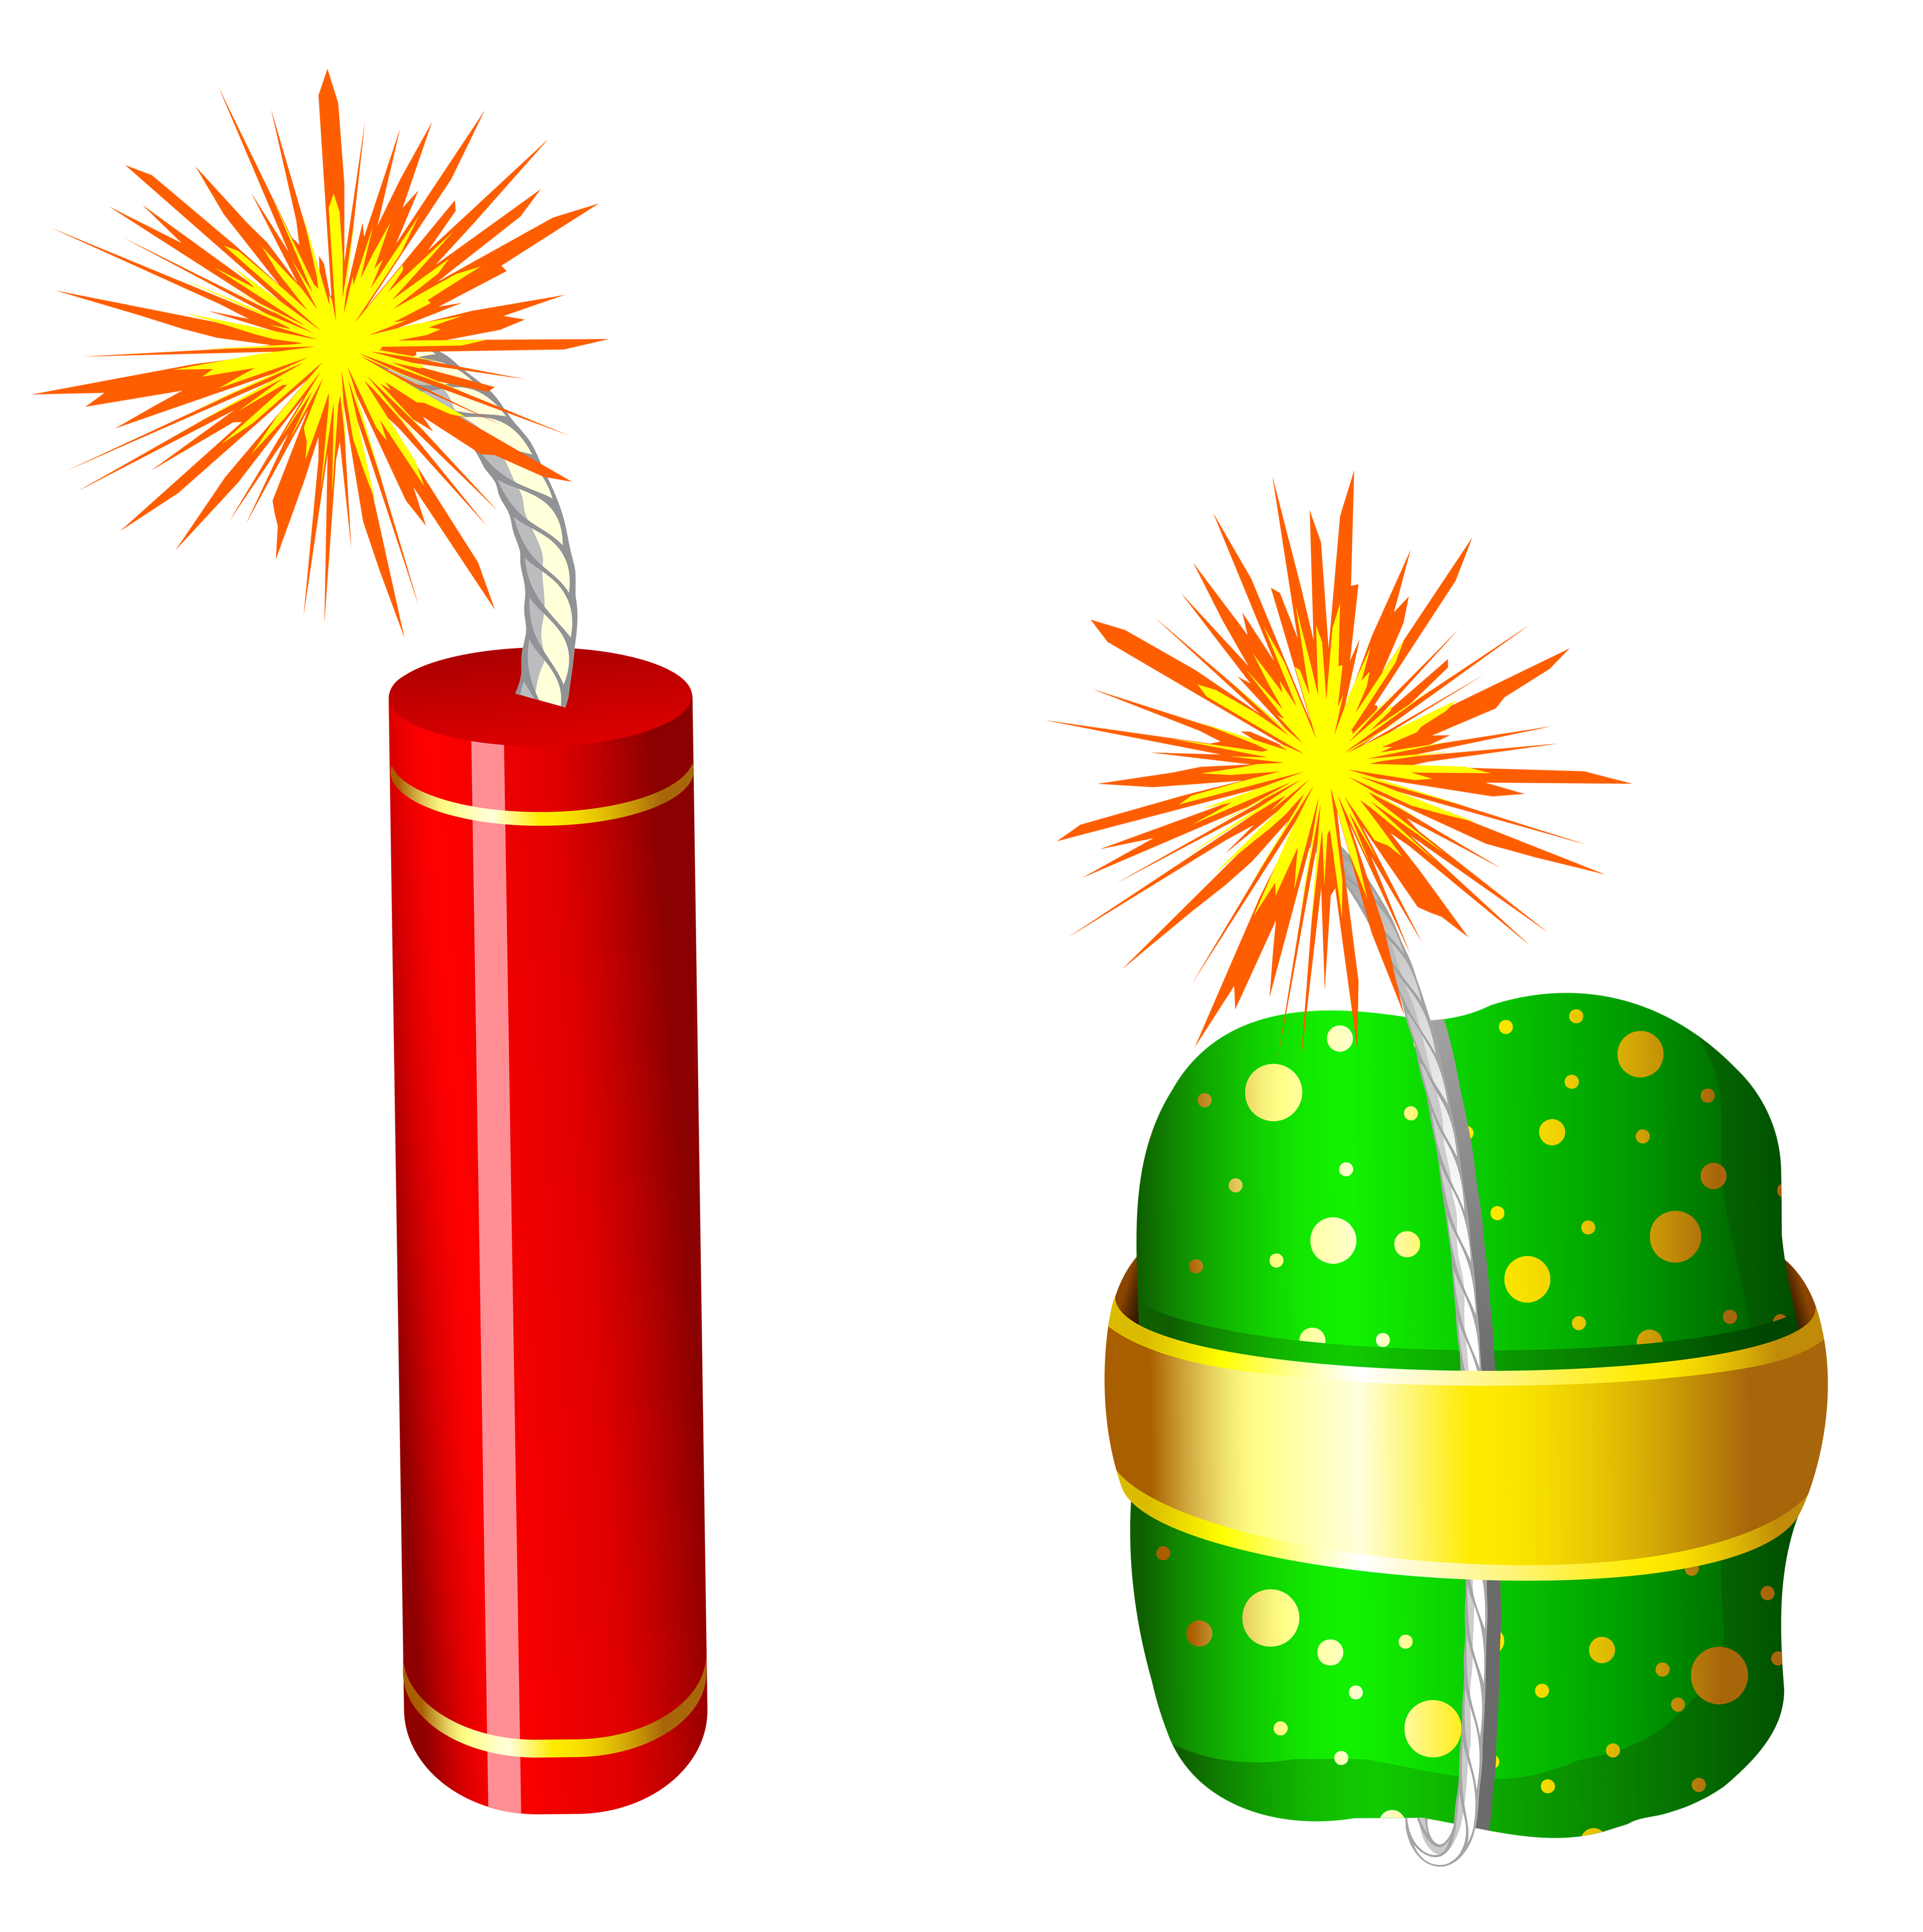 graphic black and white download Firecrackers png clip art. Firecracker clipart